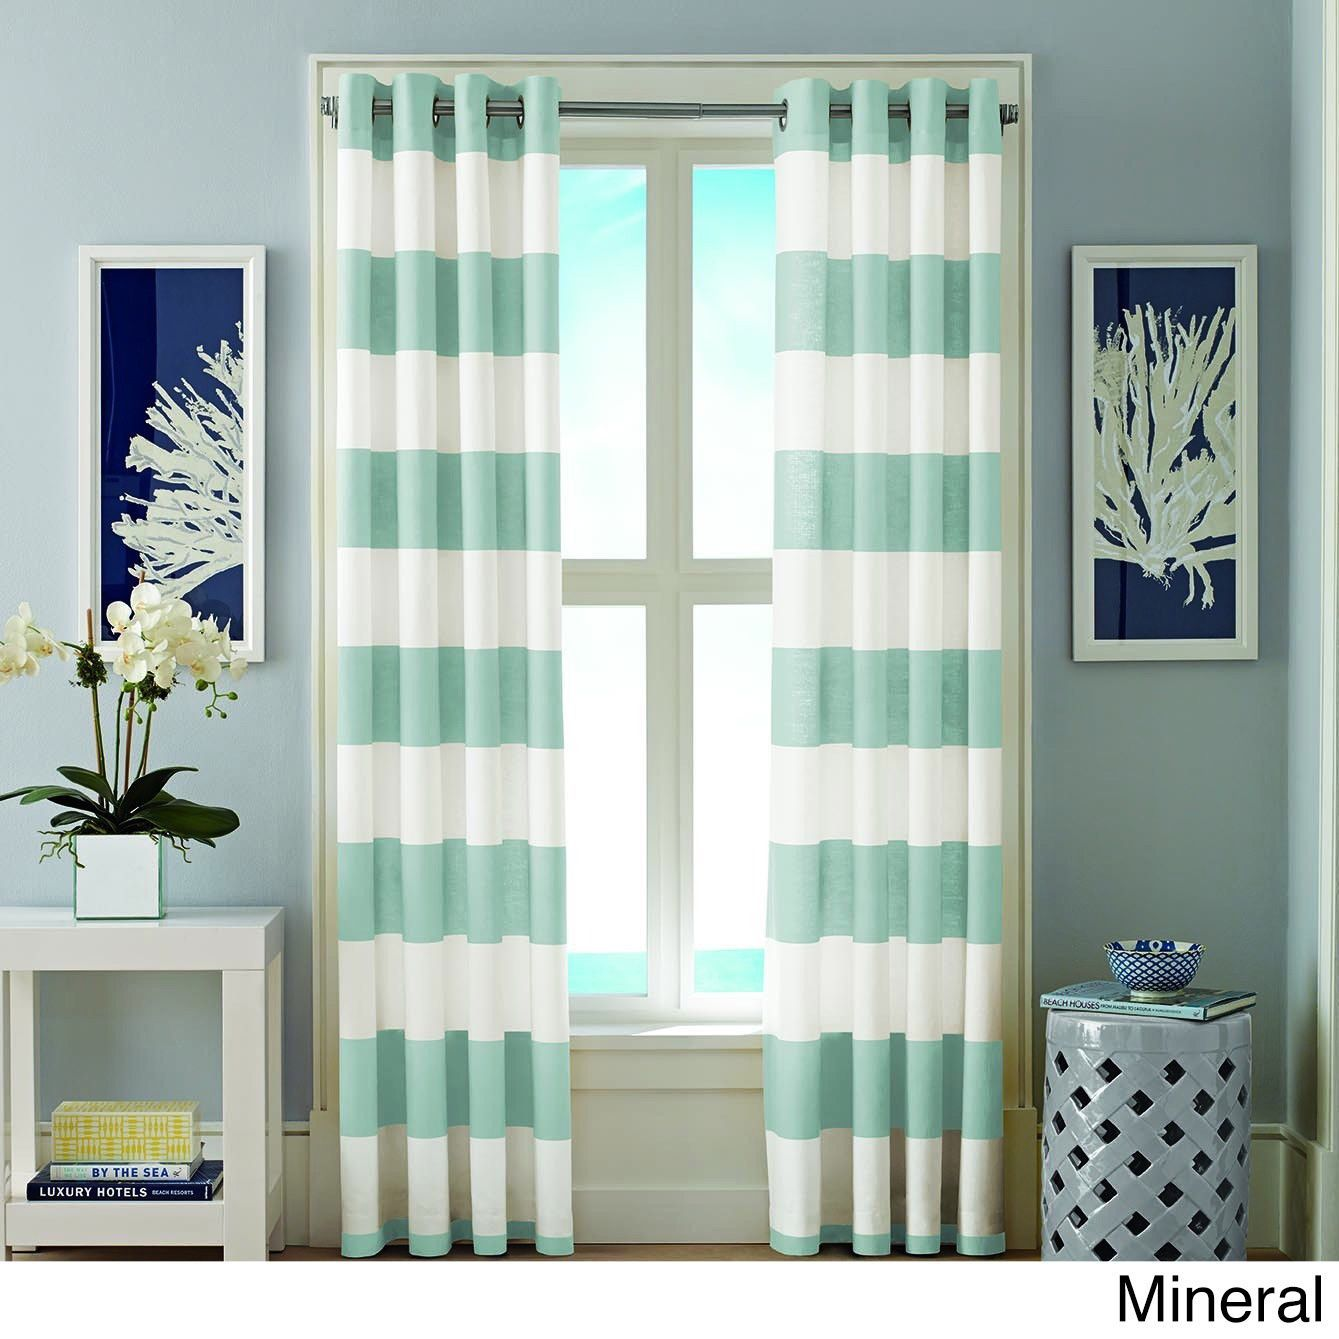 Luxury window coverings  nautica cabana inch grommet top curtain panel pair  products